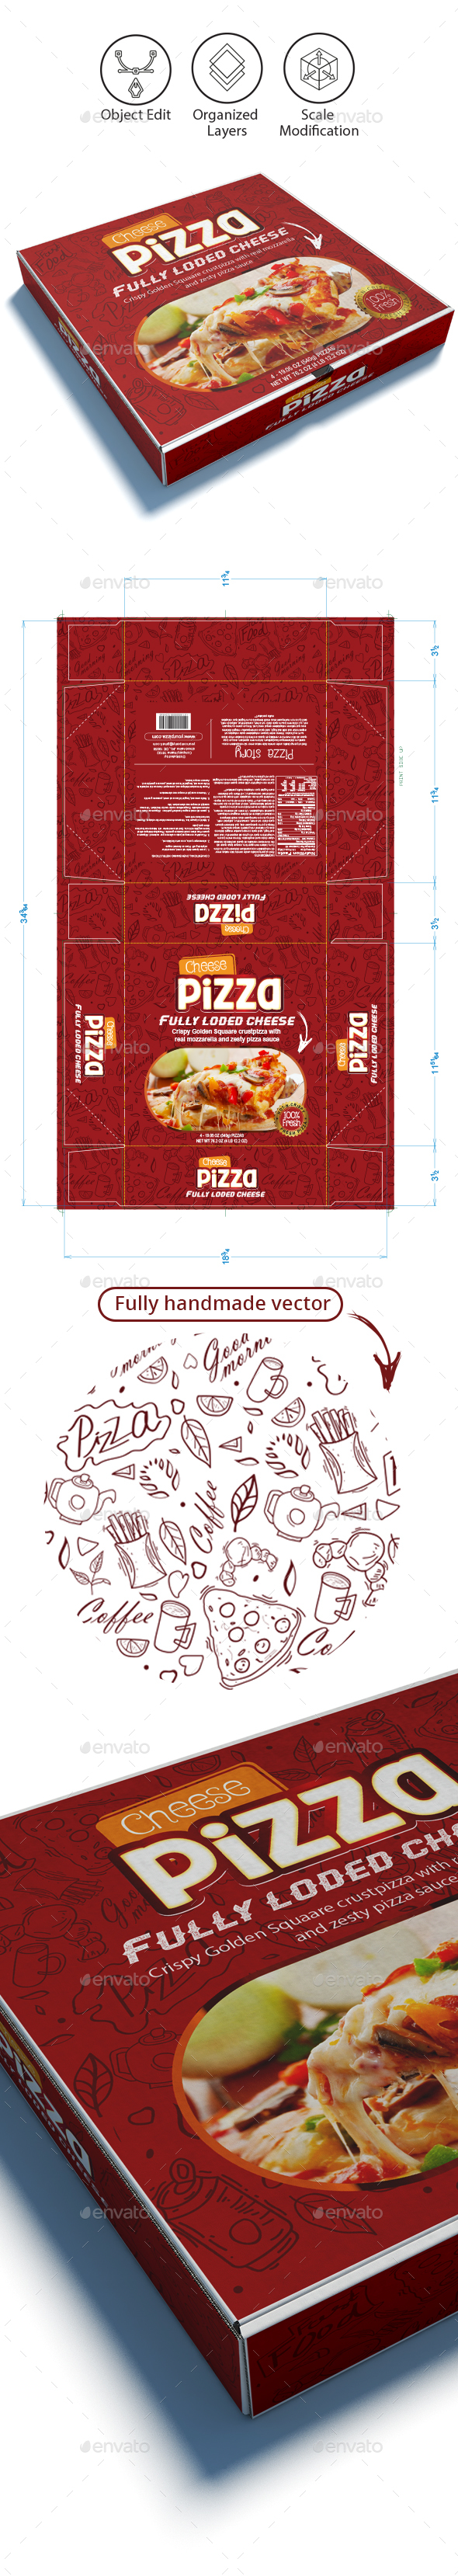 Pizza Box Template - Packaging Print Templates